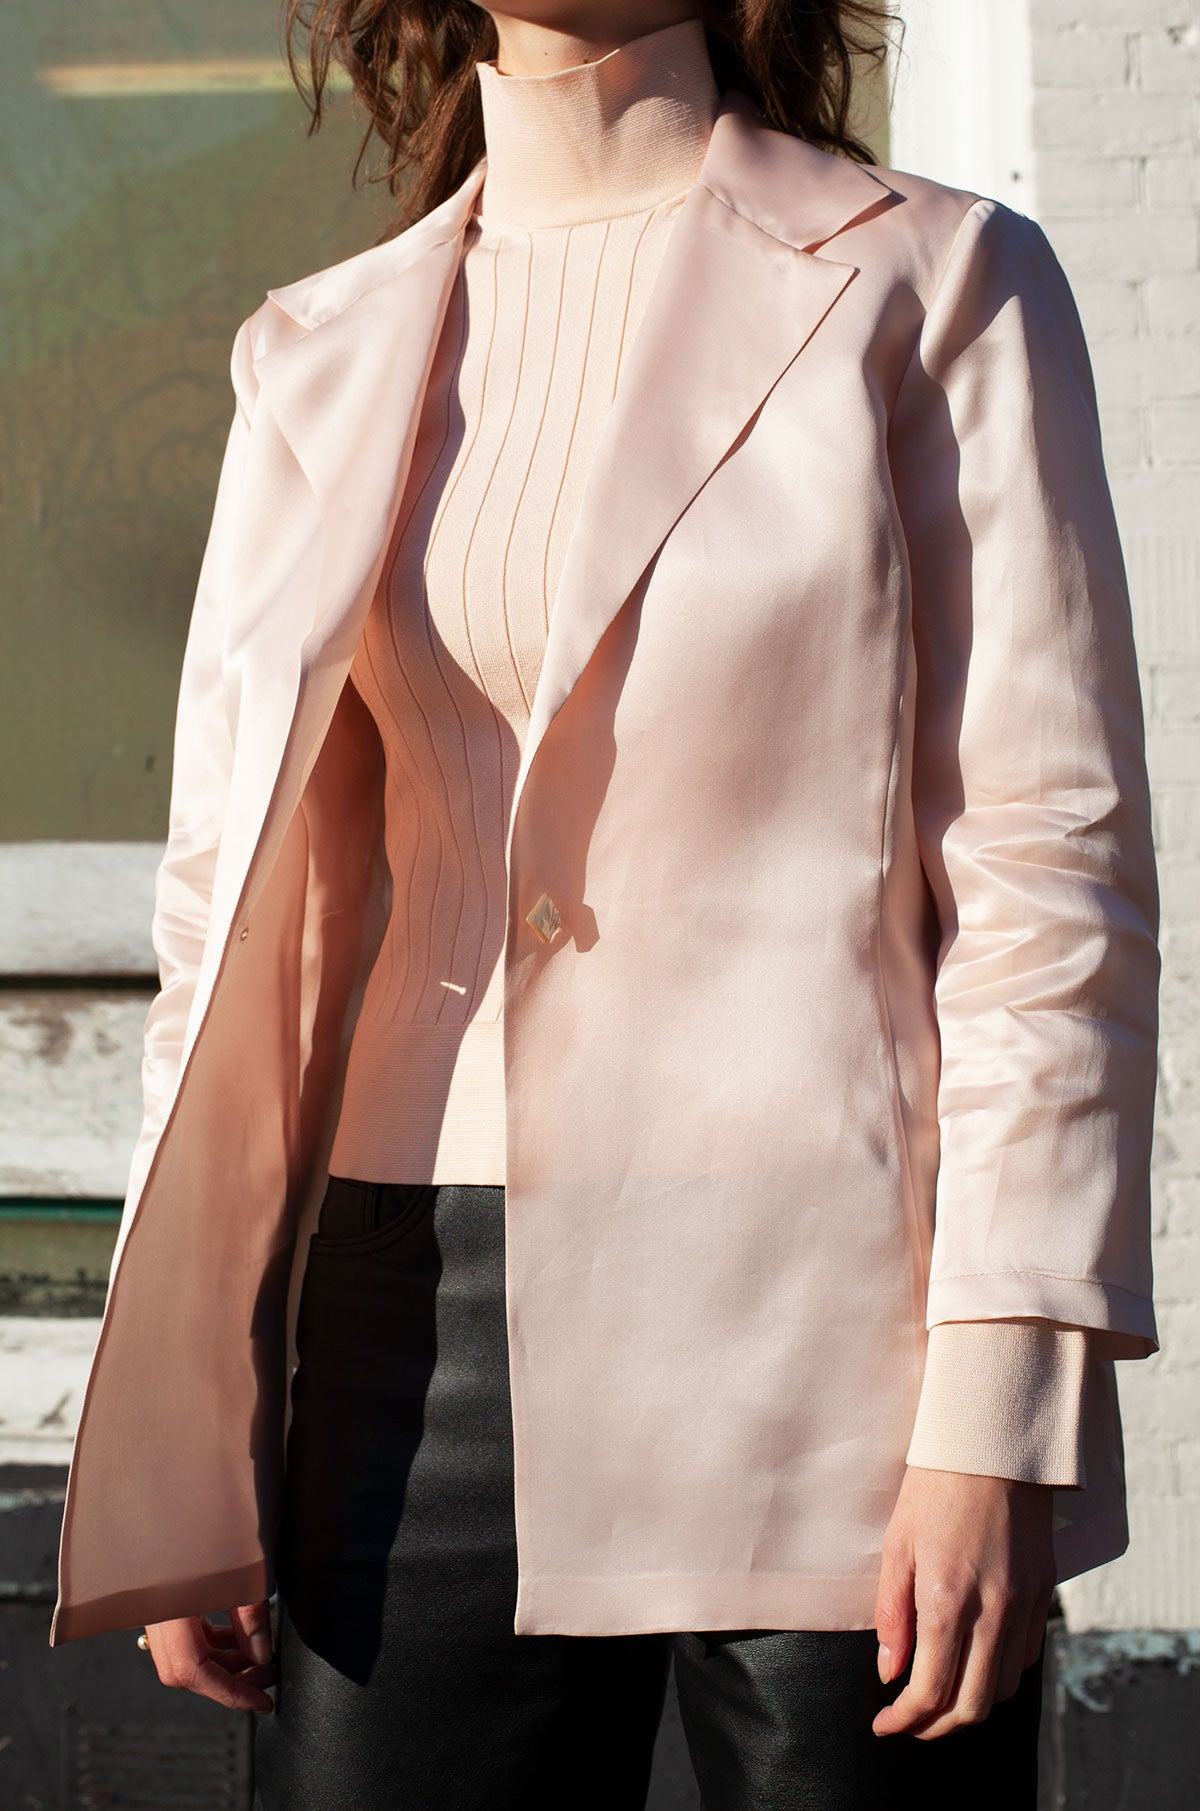 Gianfranco Ferre Studio Light Pink Silk Blazer